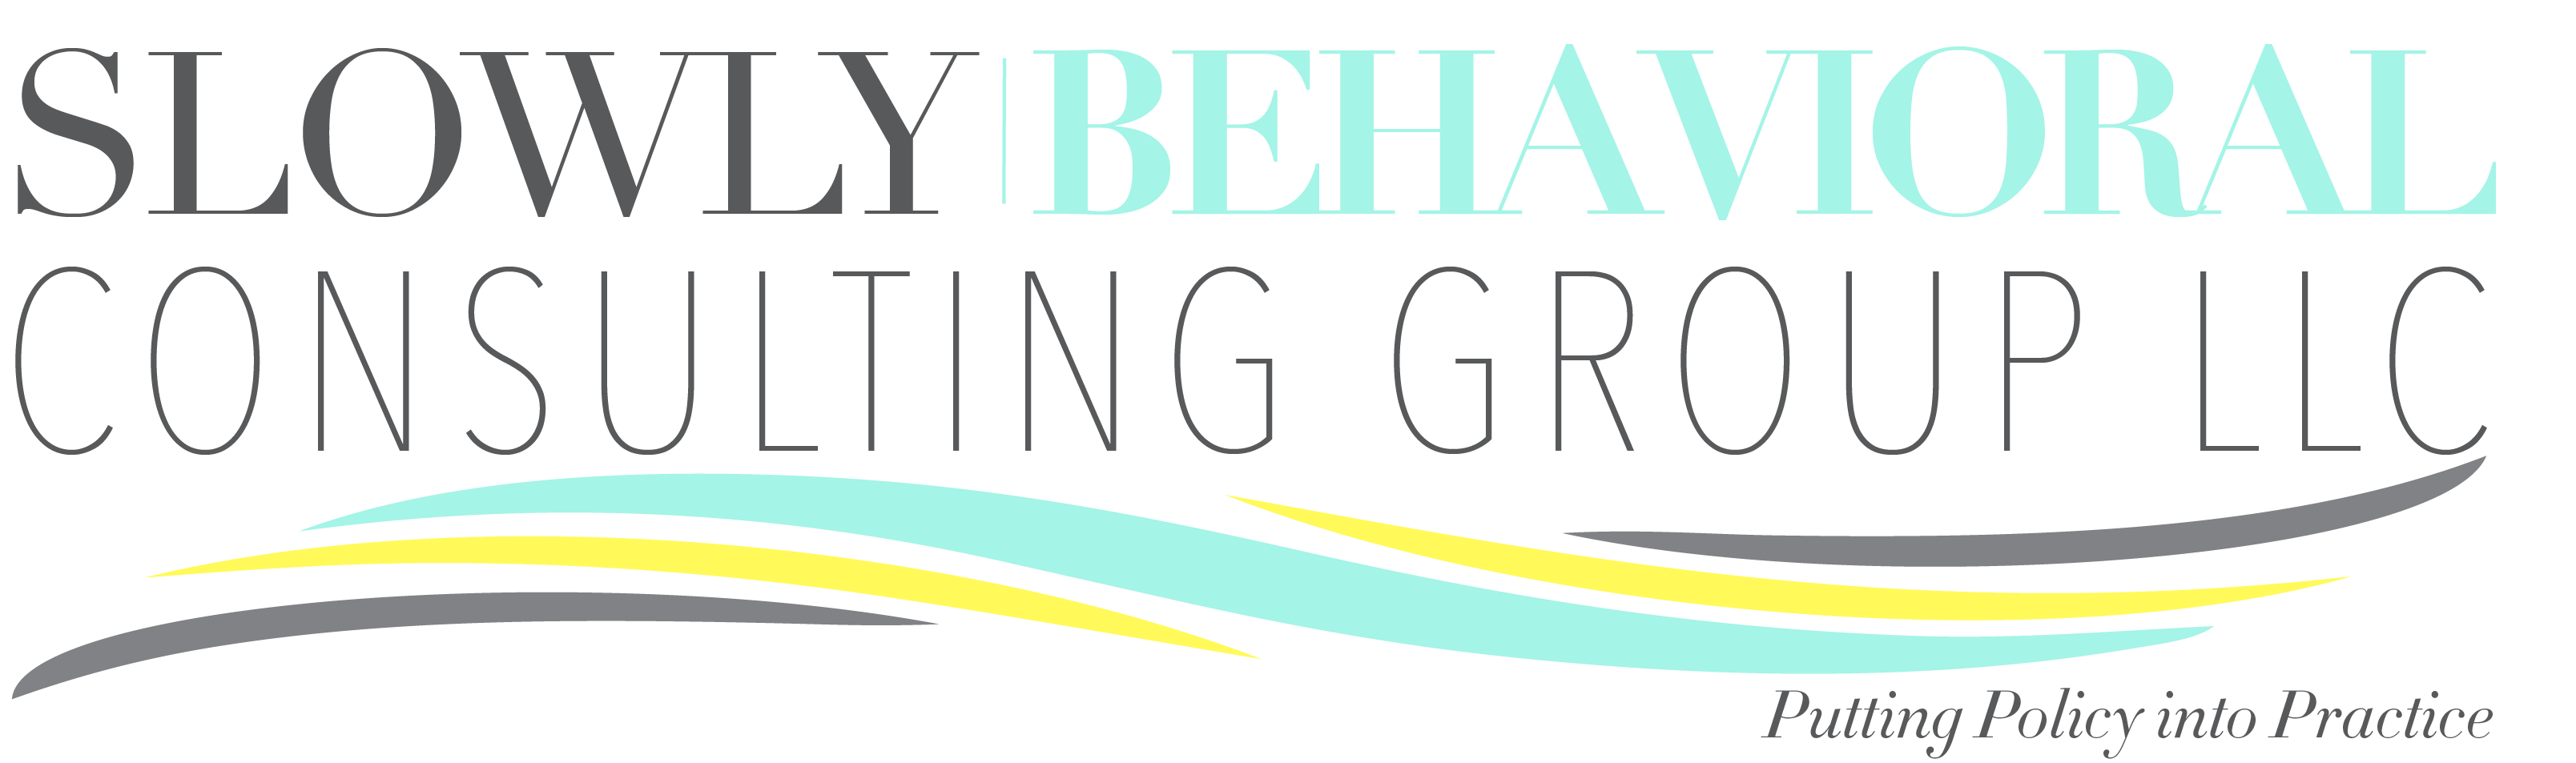 Slowly Behavioral Consulting Group LLC